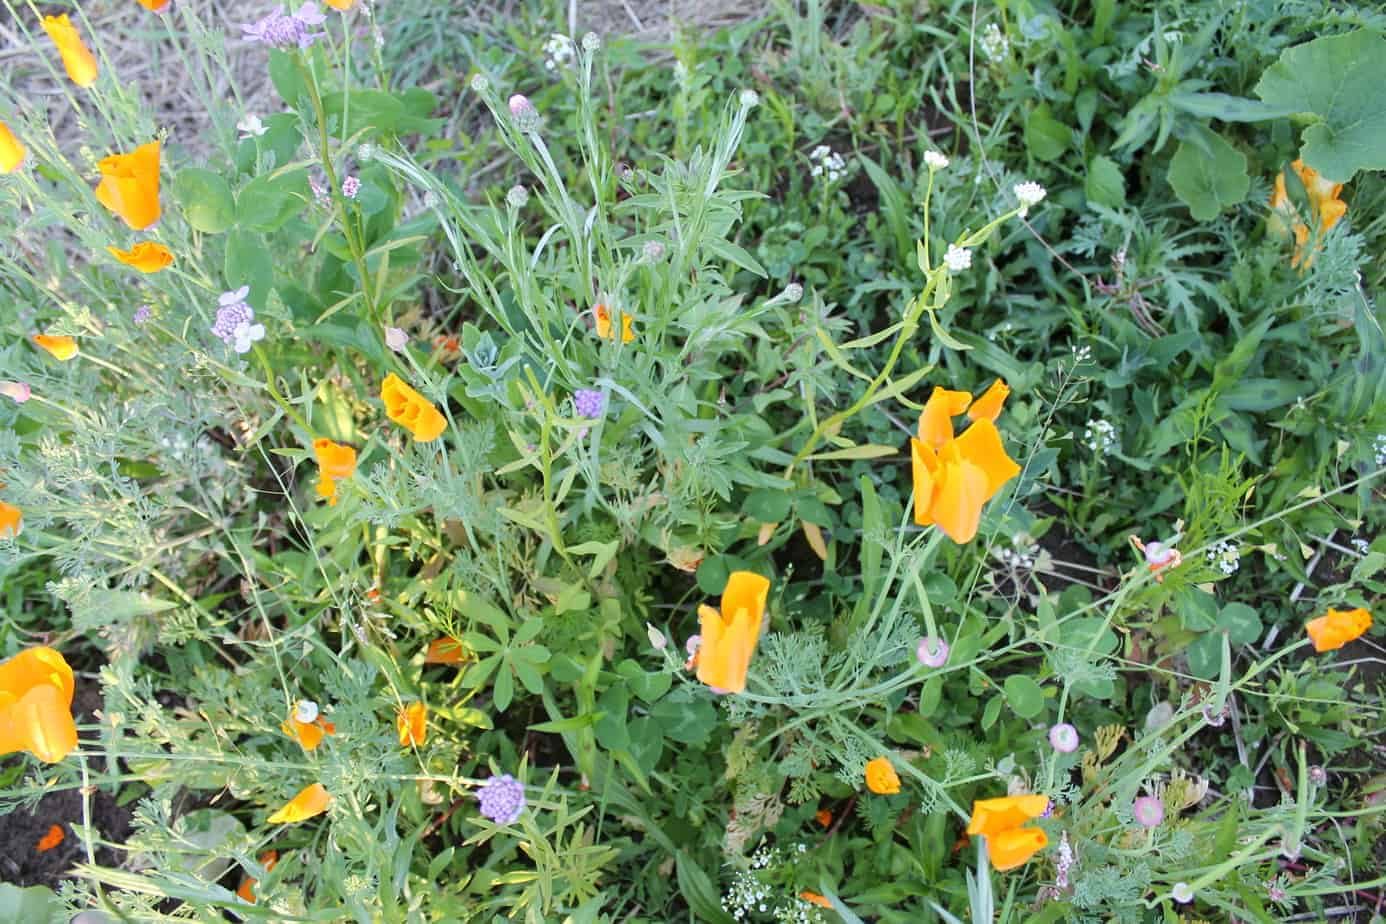 Pros & cons to growing wildflowers in your garden